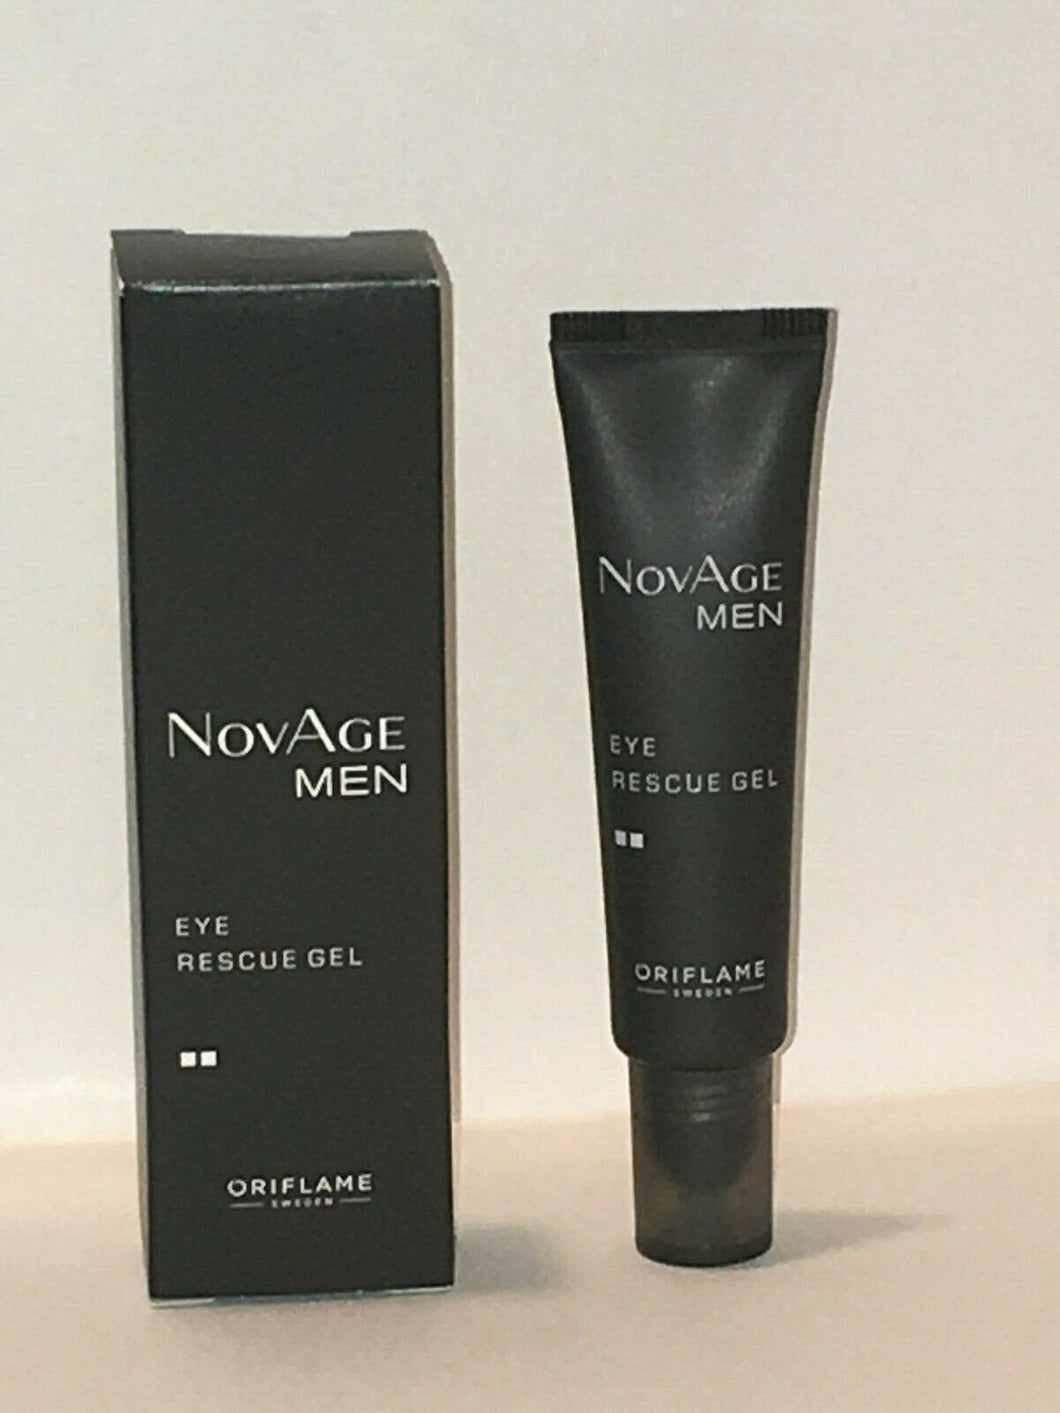 ORIFLAME SWEDEN NOVAGE MEN EYE RESCUE GEL 15 ml. NEW!